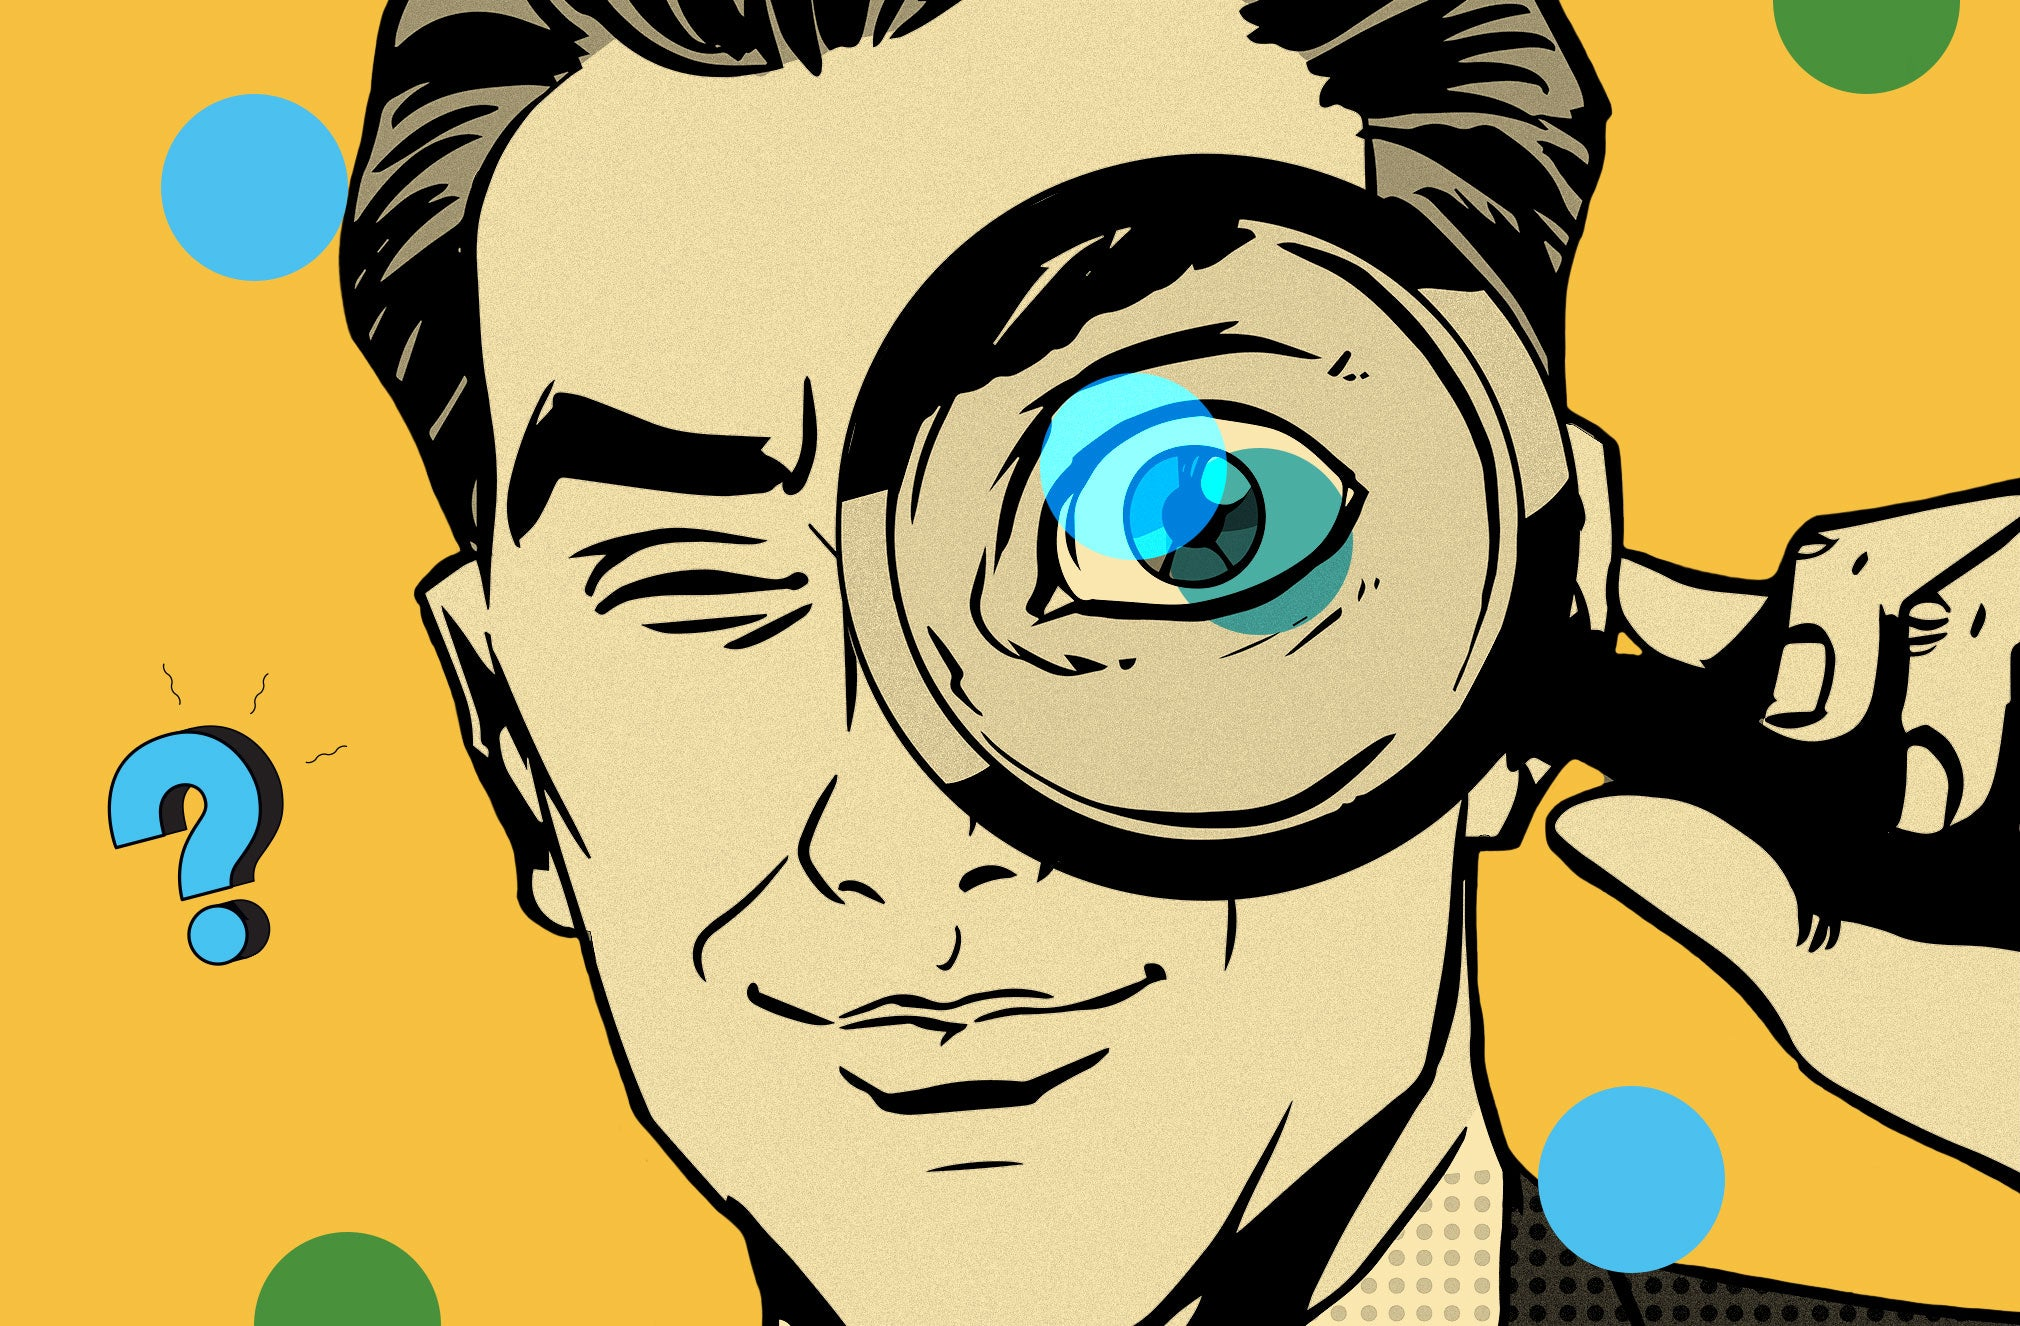 an illustrated man with a magnifying glass held up to his eye